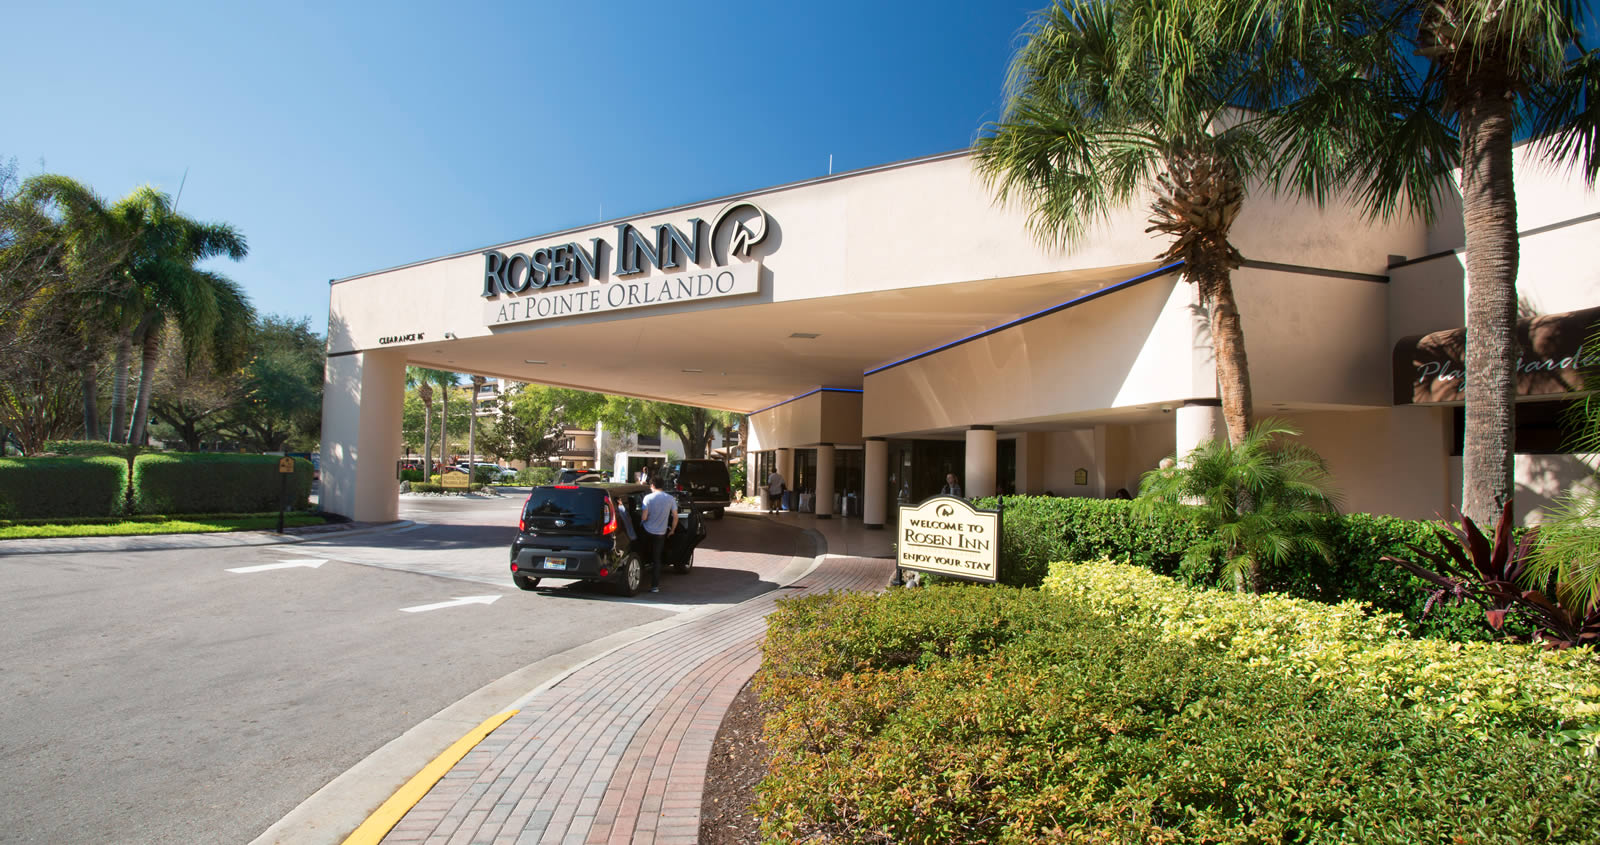 International Drive Hotel At Pointe Orlando Orlando Best Value Hotel